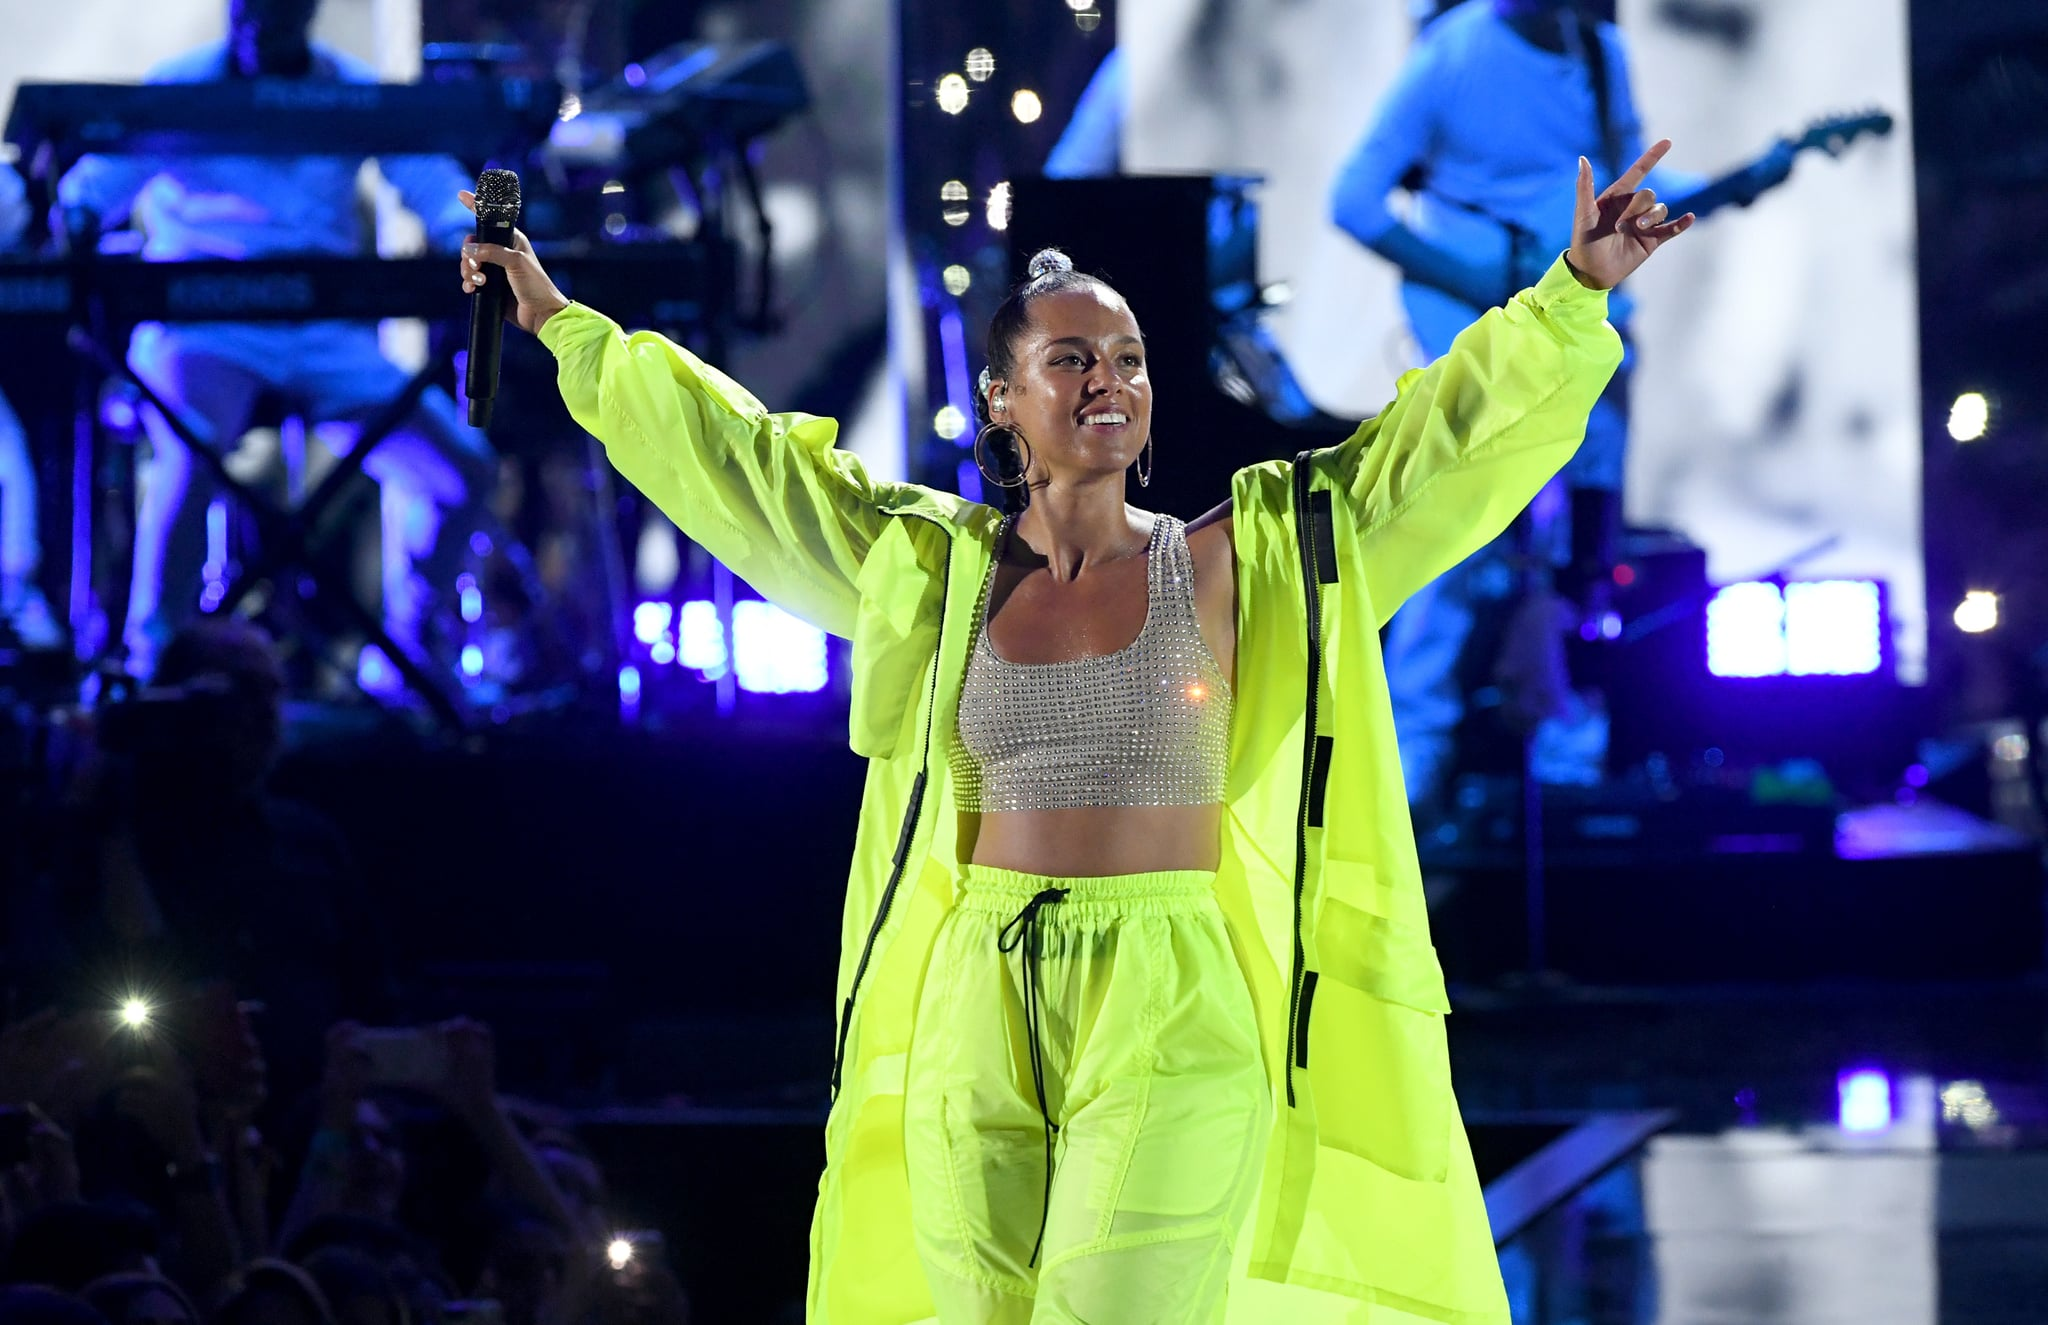 LAS VEGAS, NEVADA - SEPTEMBER 21: (EDITORIAL USE ONLY) Alicia Keys performs onstage during the 2019 iHeartRadio Music Festival at T-Mobile Arena on September 21, 2019 in Las Vegas, Nevada. (Photo by Kevin Winter/Getty Images for iHeartMedia)